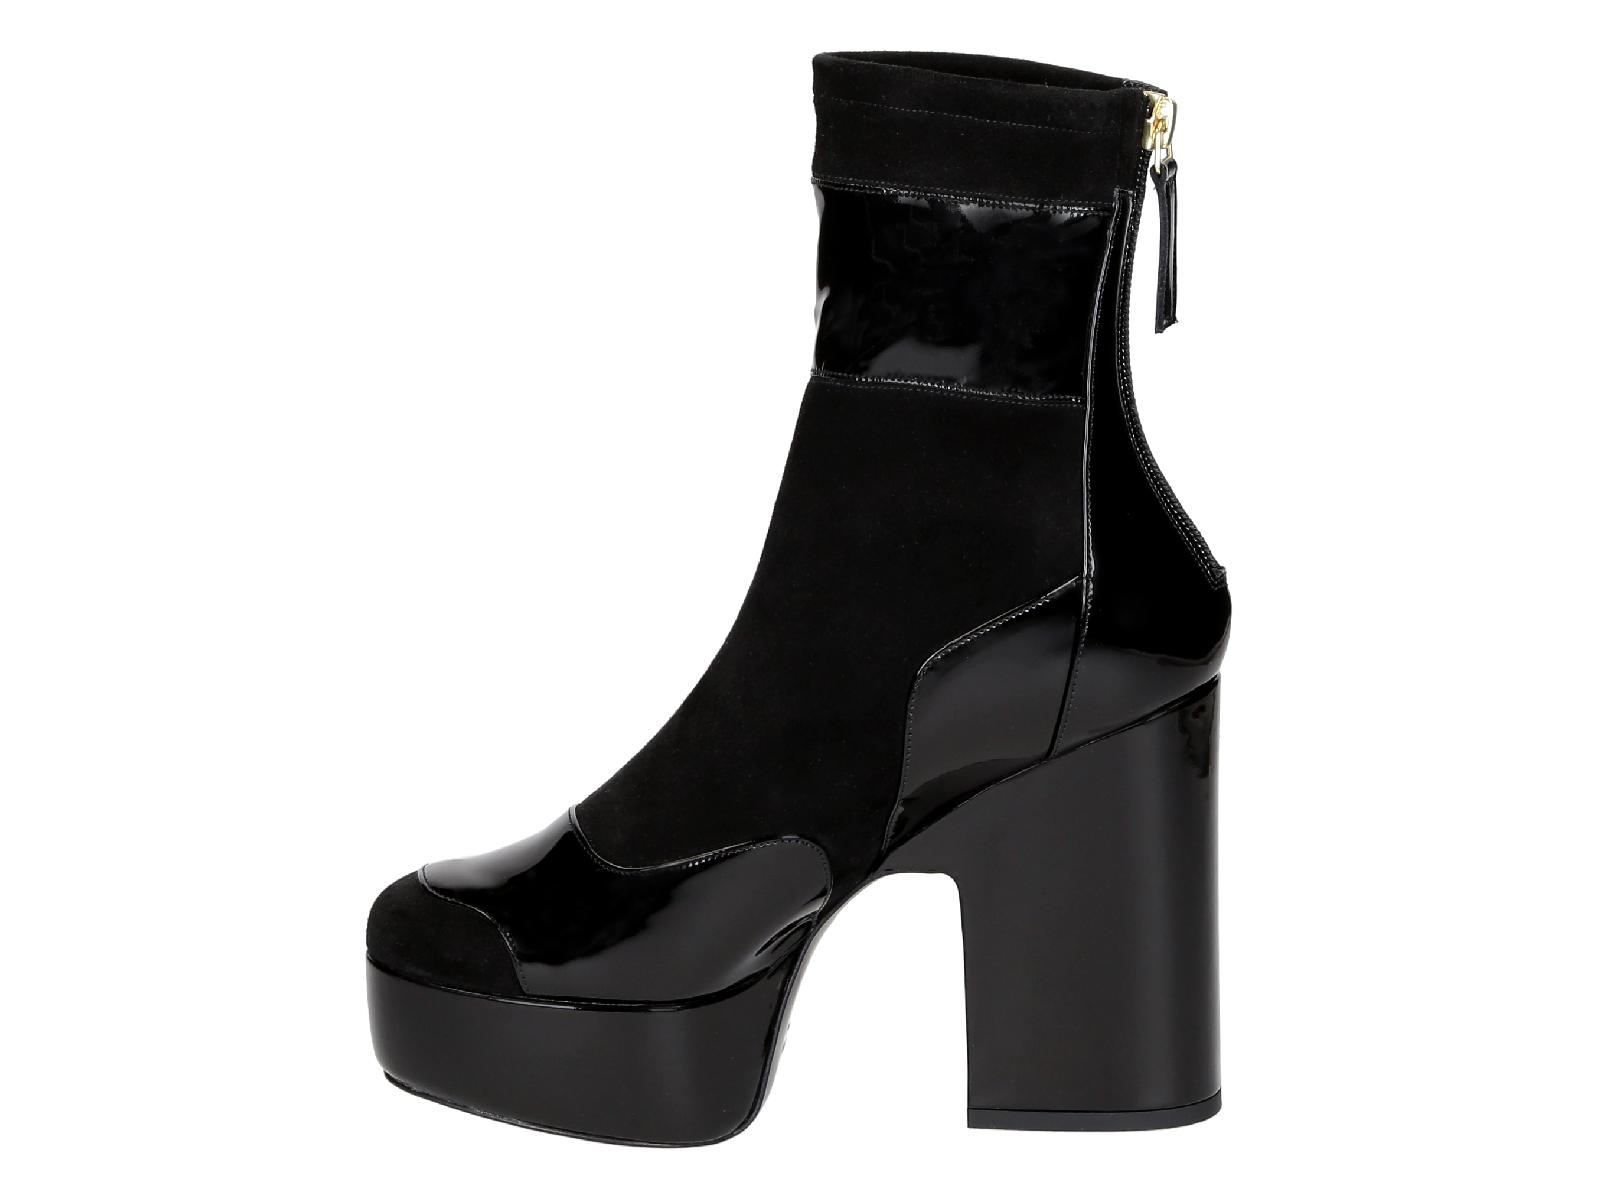 Pierre-Hardy-Women-039-s-mid-calf-boots-with-high-block-heels-in-black-Suede-leather thumbnail 9